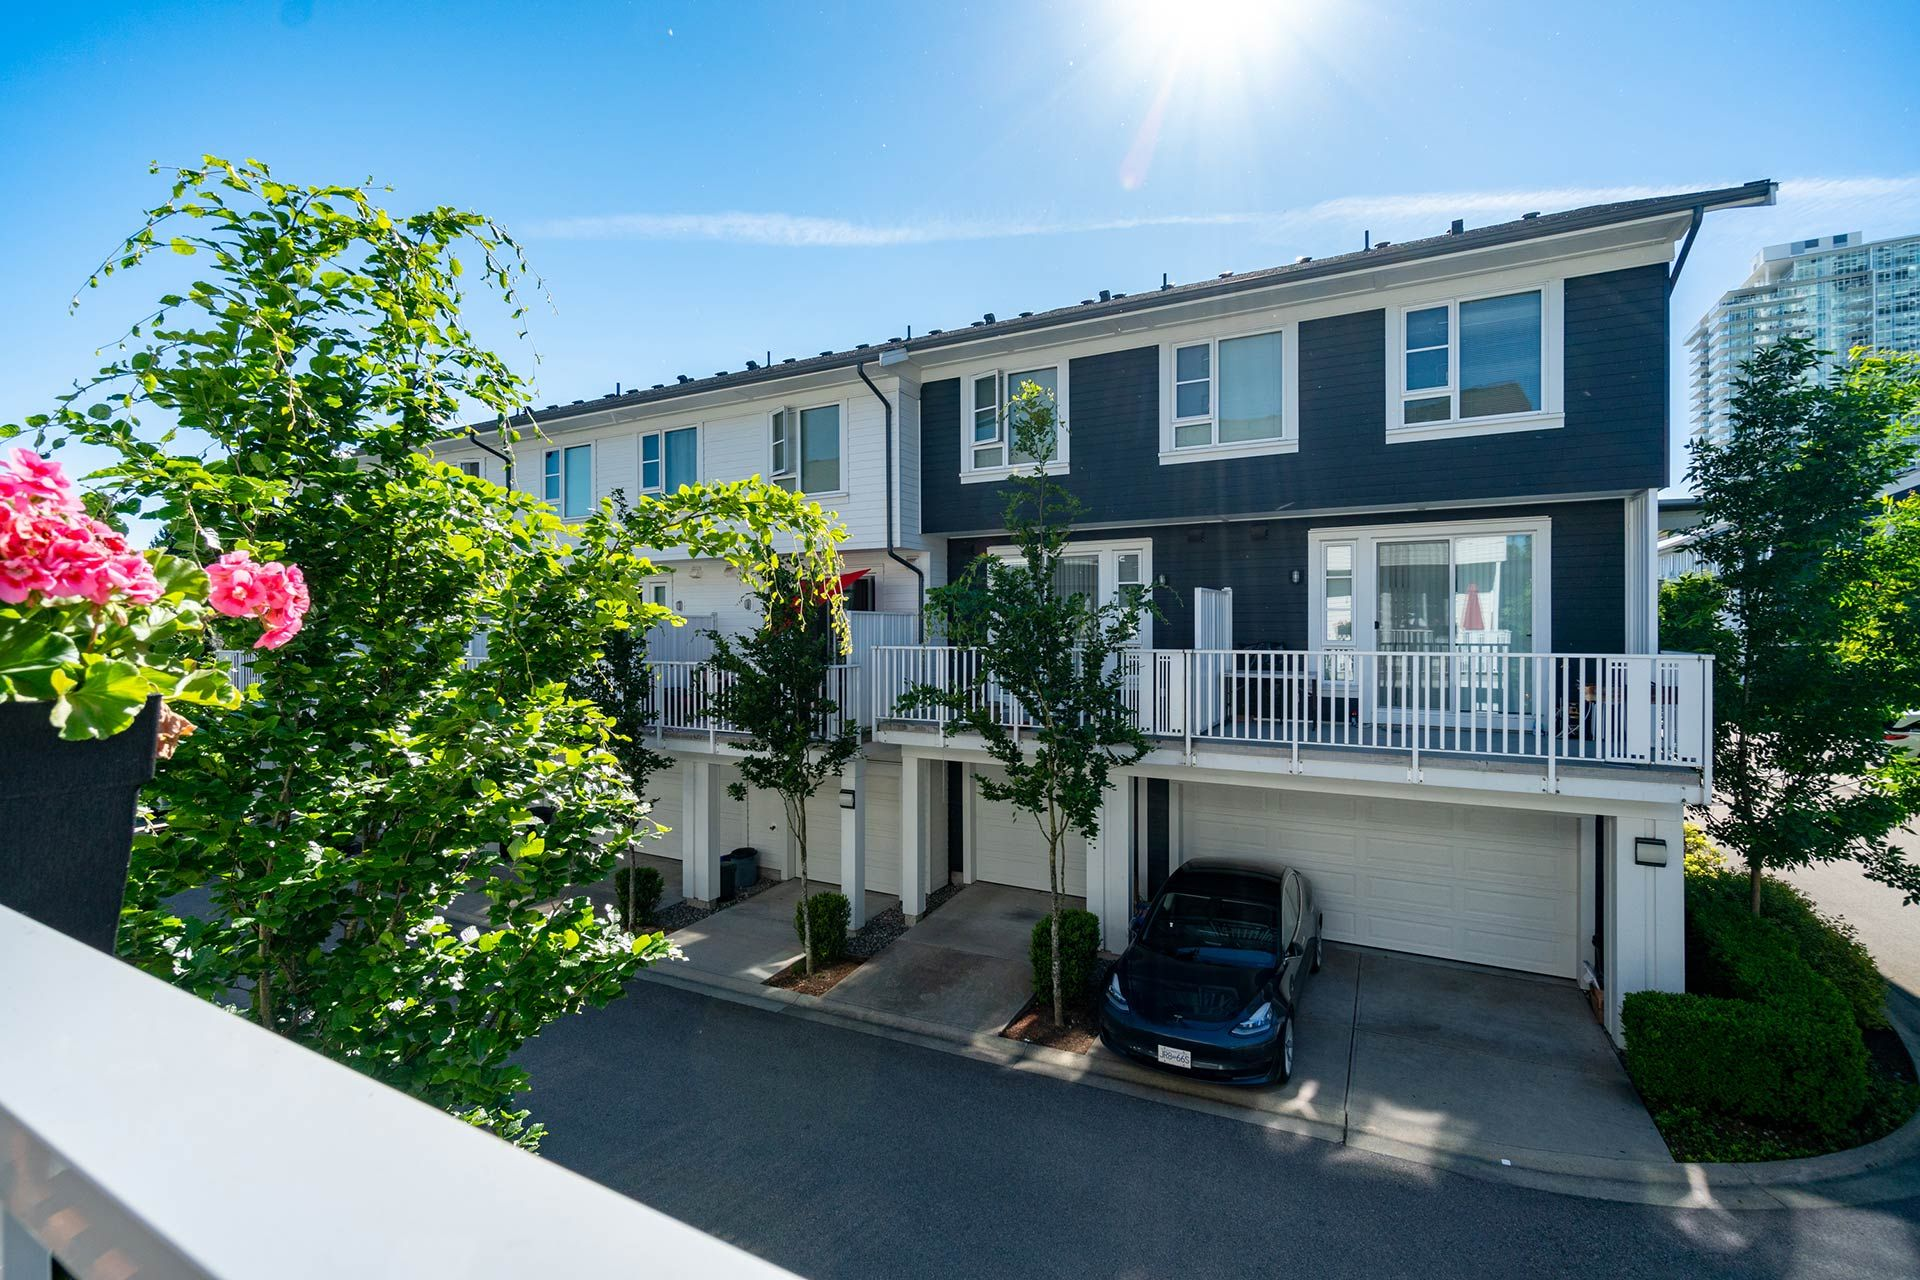 """Photo 22: Photos: 154 548 FOSTER Avenue in Coquitlam: Coquitlam West Townhouse for sale in """"BLACK + WHITE"""" : MLS®# R2587208"""